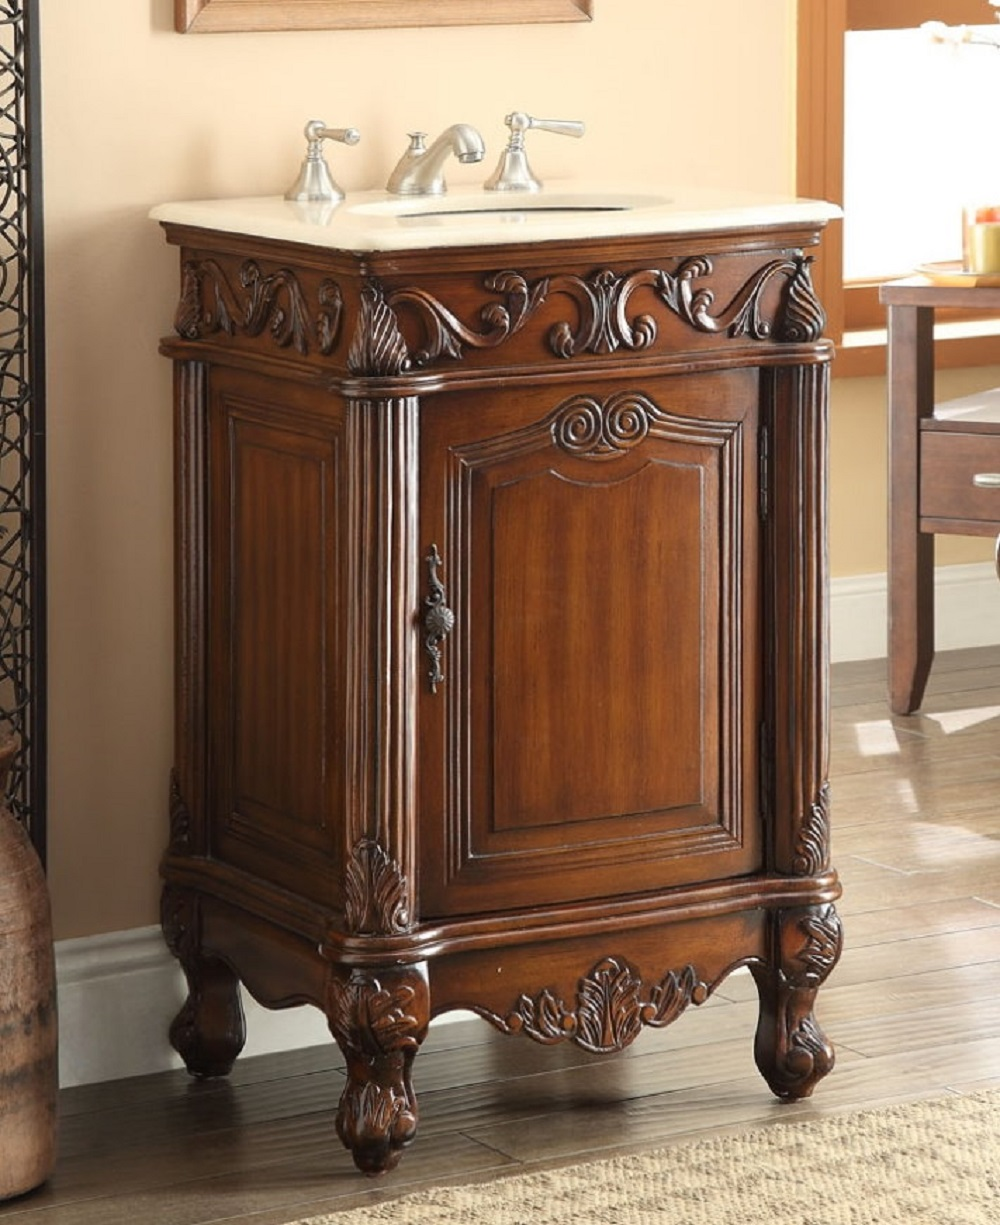 21 Inch Bathroom Vanity Traditional Style Medium Brown Color (21Wx21Dx34H) CCF2801MTK